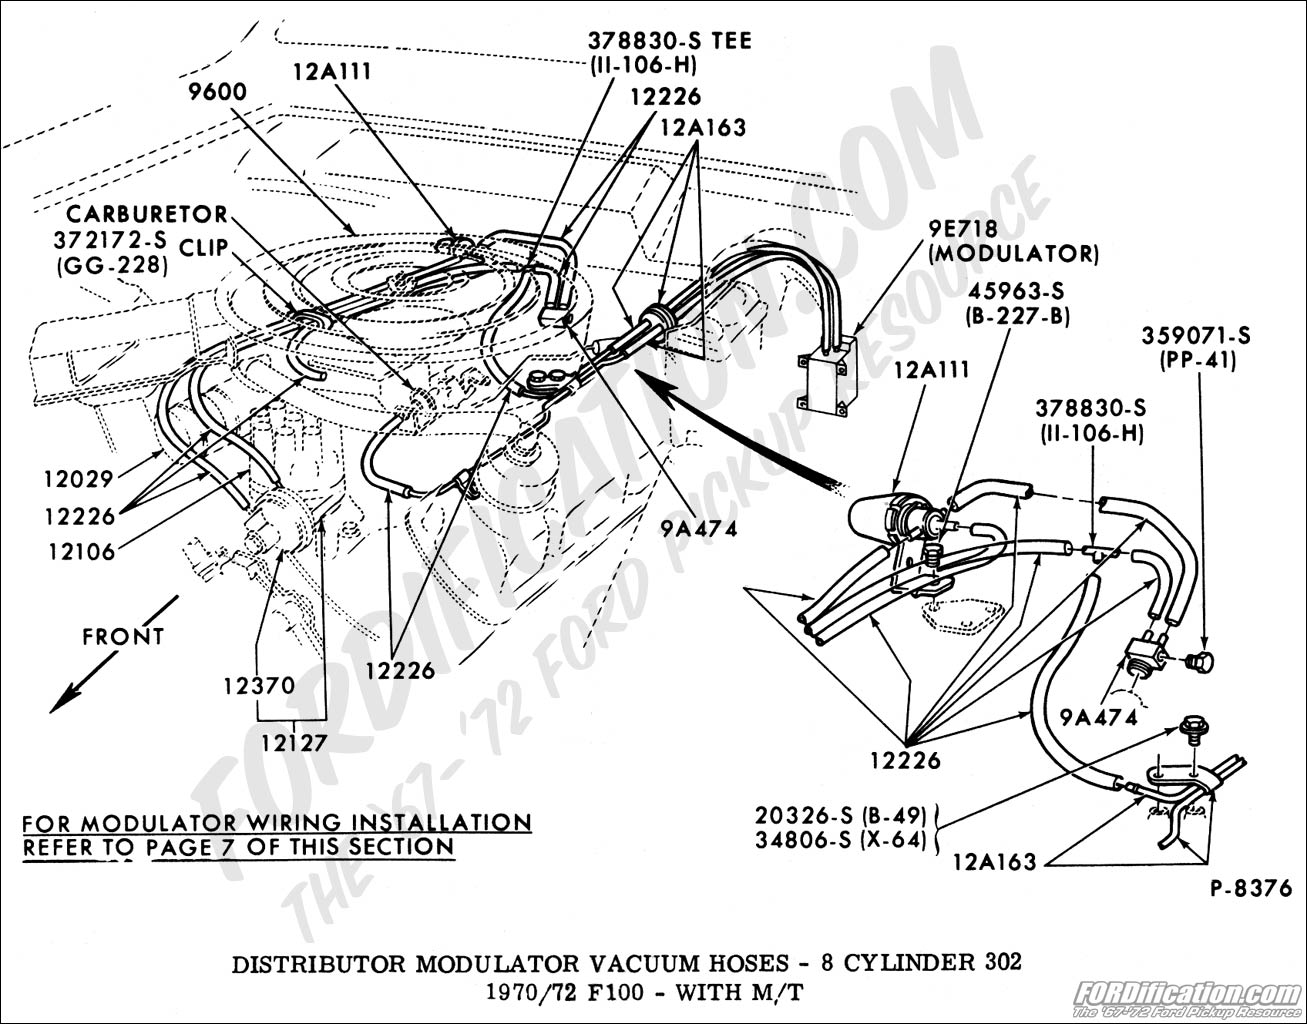 2005 Yamaha Dt125x Wiring Diagram besides 5d7w2 Chevrolet Truck 97 Chevy Silverado Will Not Shift additionally 1965 Mustang Wiring Diagram in addition Wiring Diagram 70ext Lights02 In 1970 Ford F100 besides 3pa1d 1971 Dodge Ballast Resistor Ignition Module Coil. on 71 ford ignition switch diagram